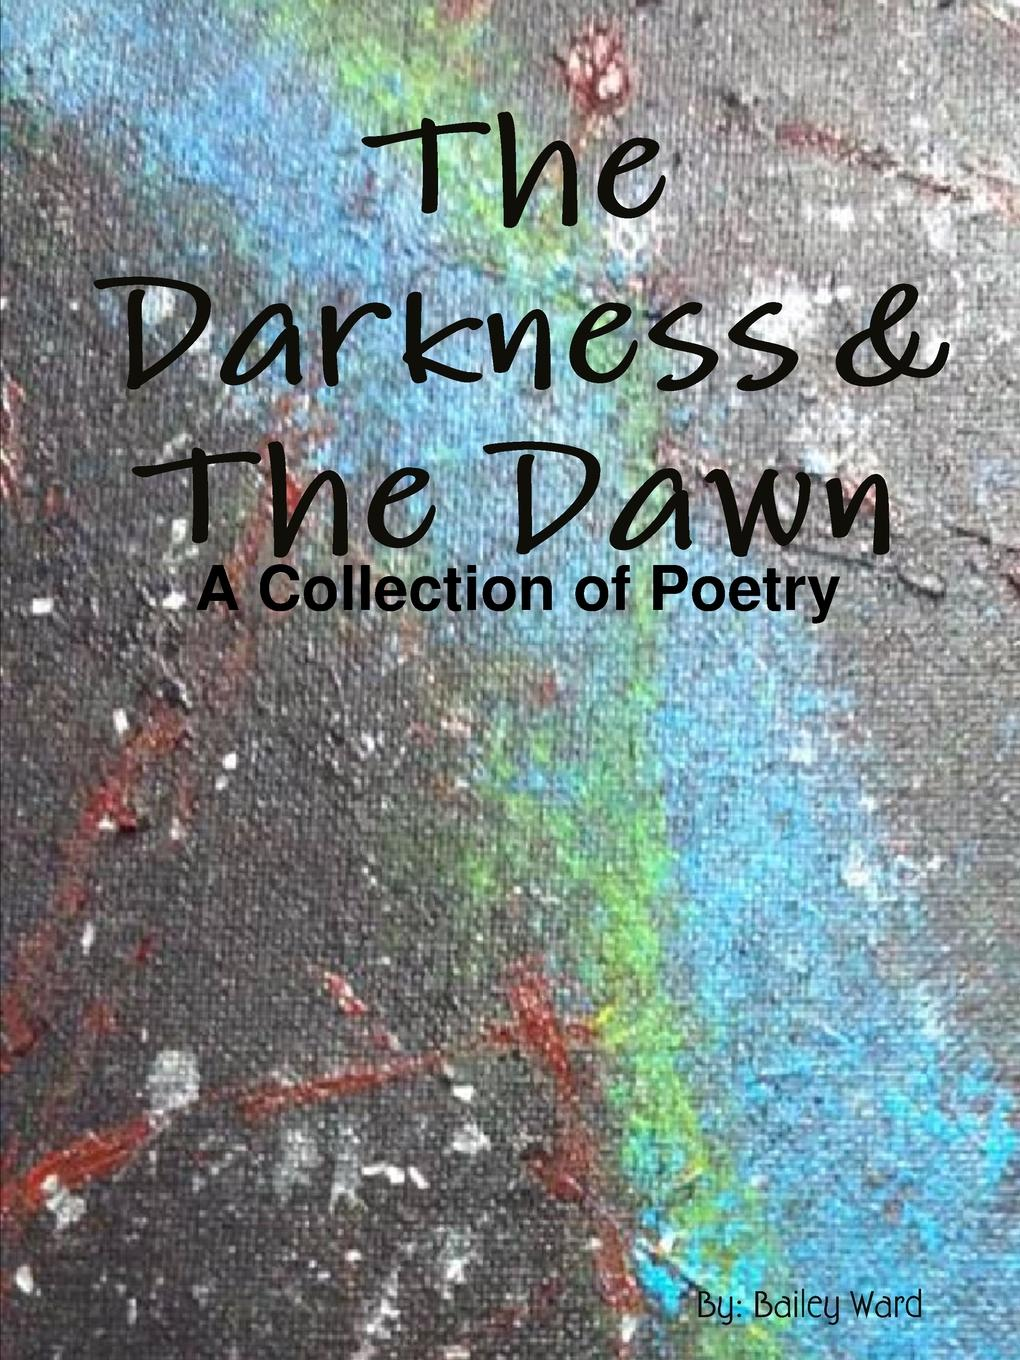 Bailey Ward The Darkness . The Dawn gary mcmahon sean t page jasper bark knightwatch gallery the knightwatch press chapbook collection